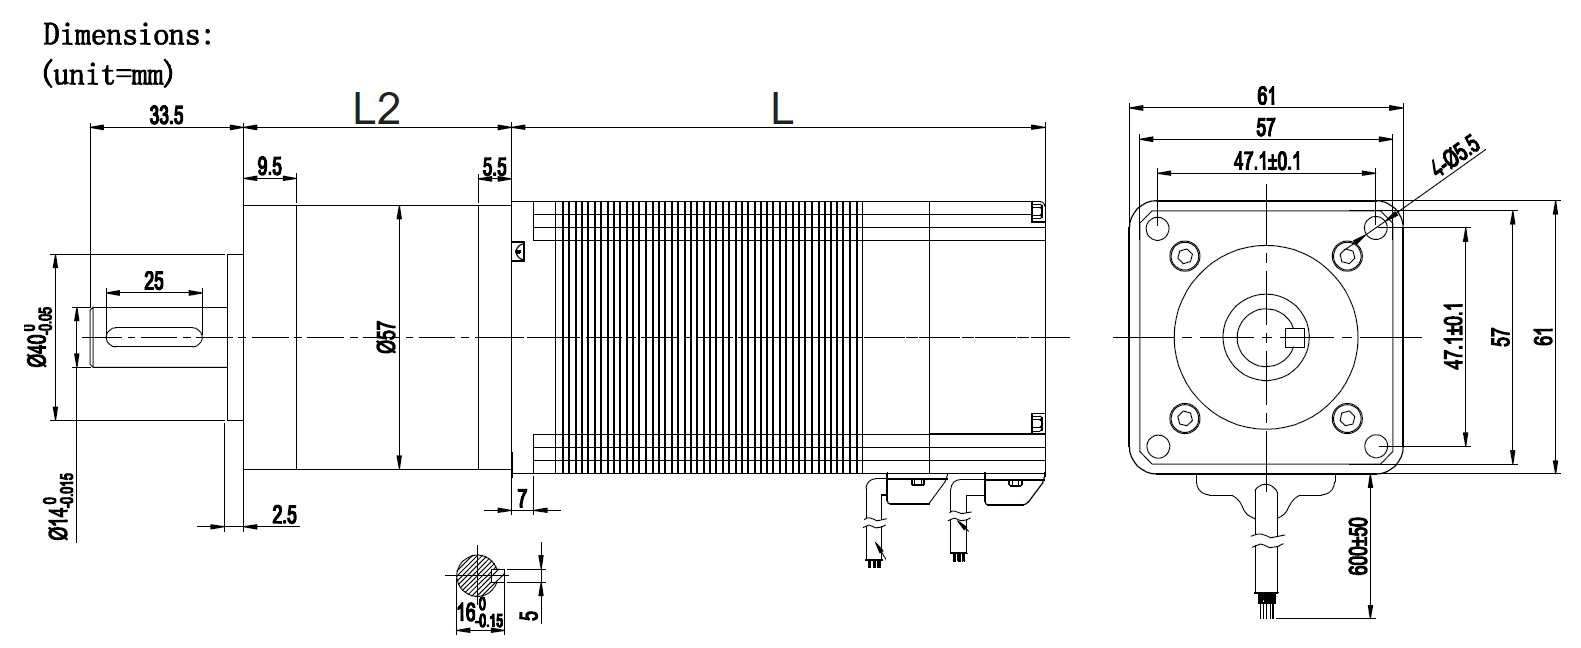 NEMA23 BLDC motor with square gearbox